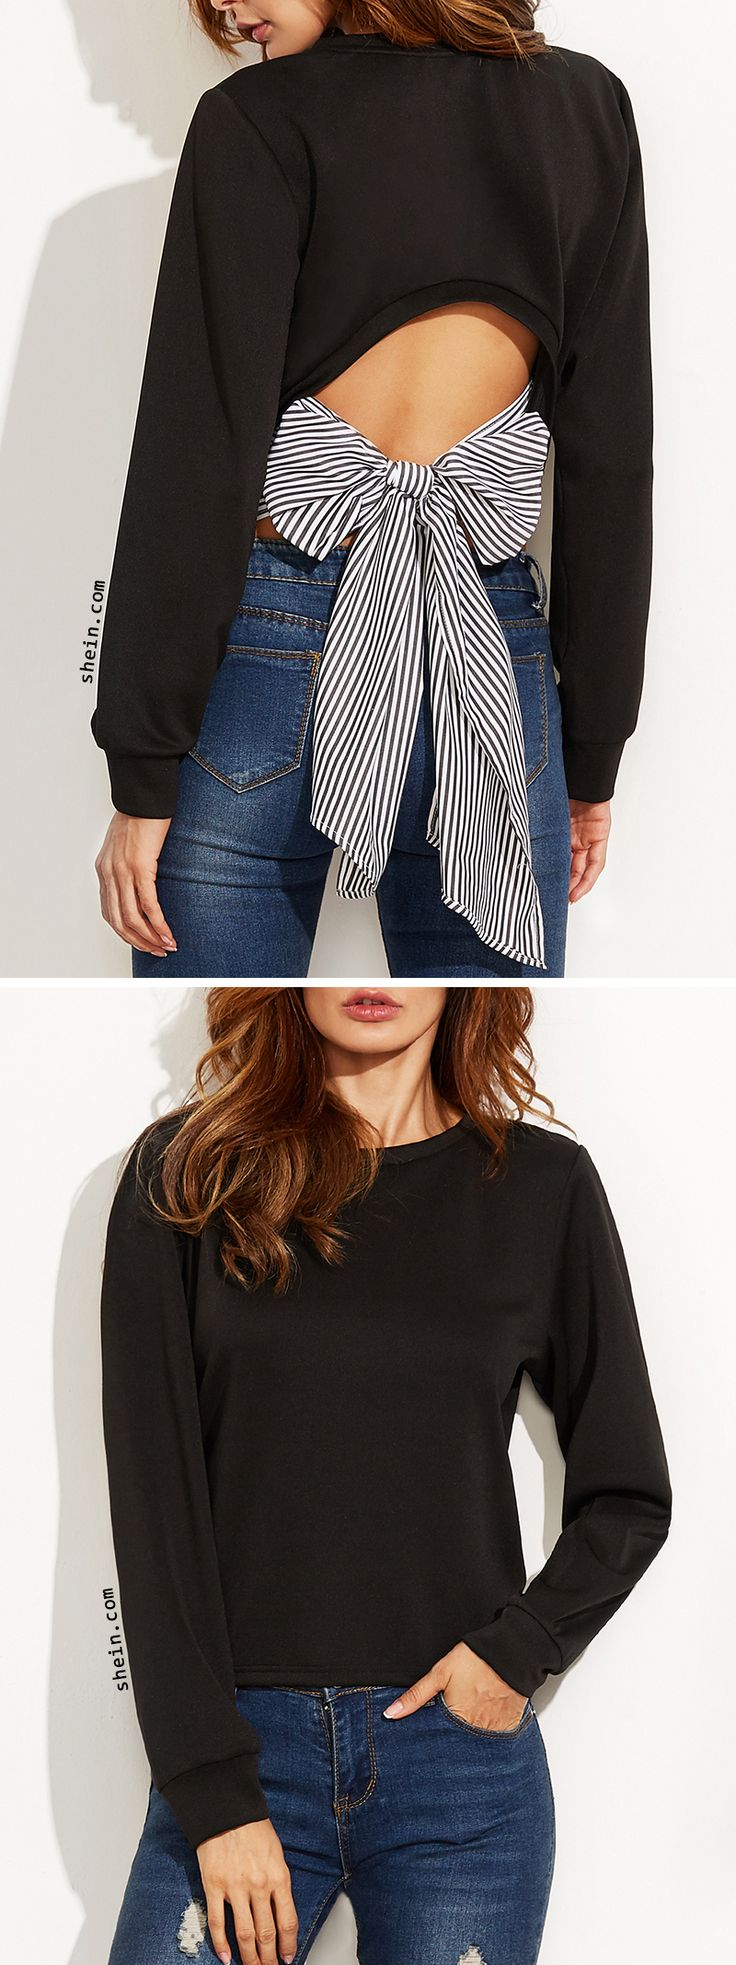 SHEIN Black Cutout Striped Bow Back Sweatshirt